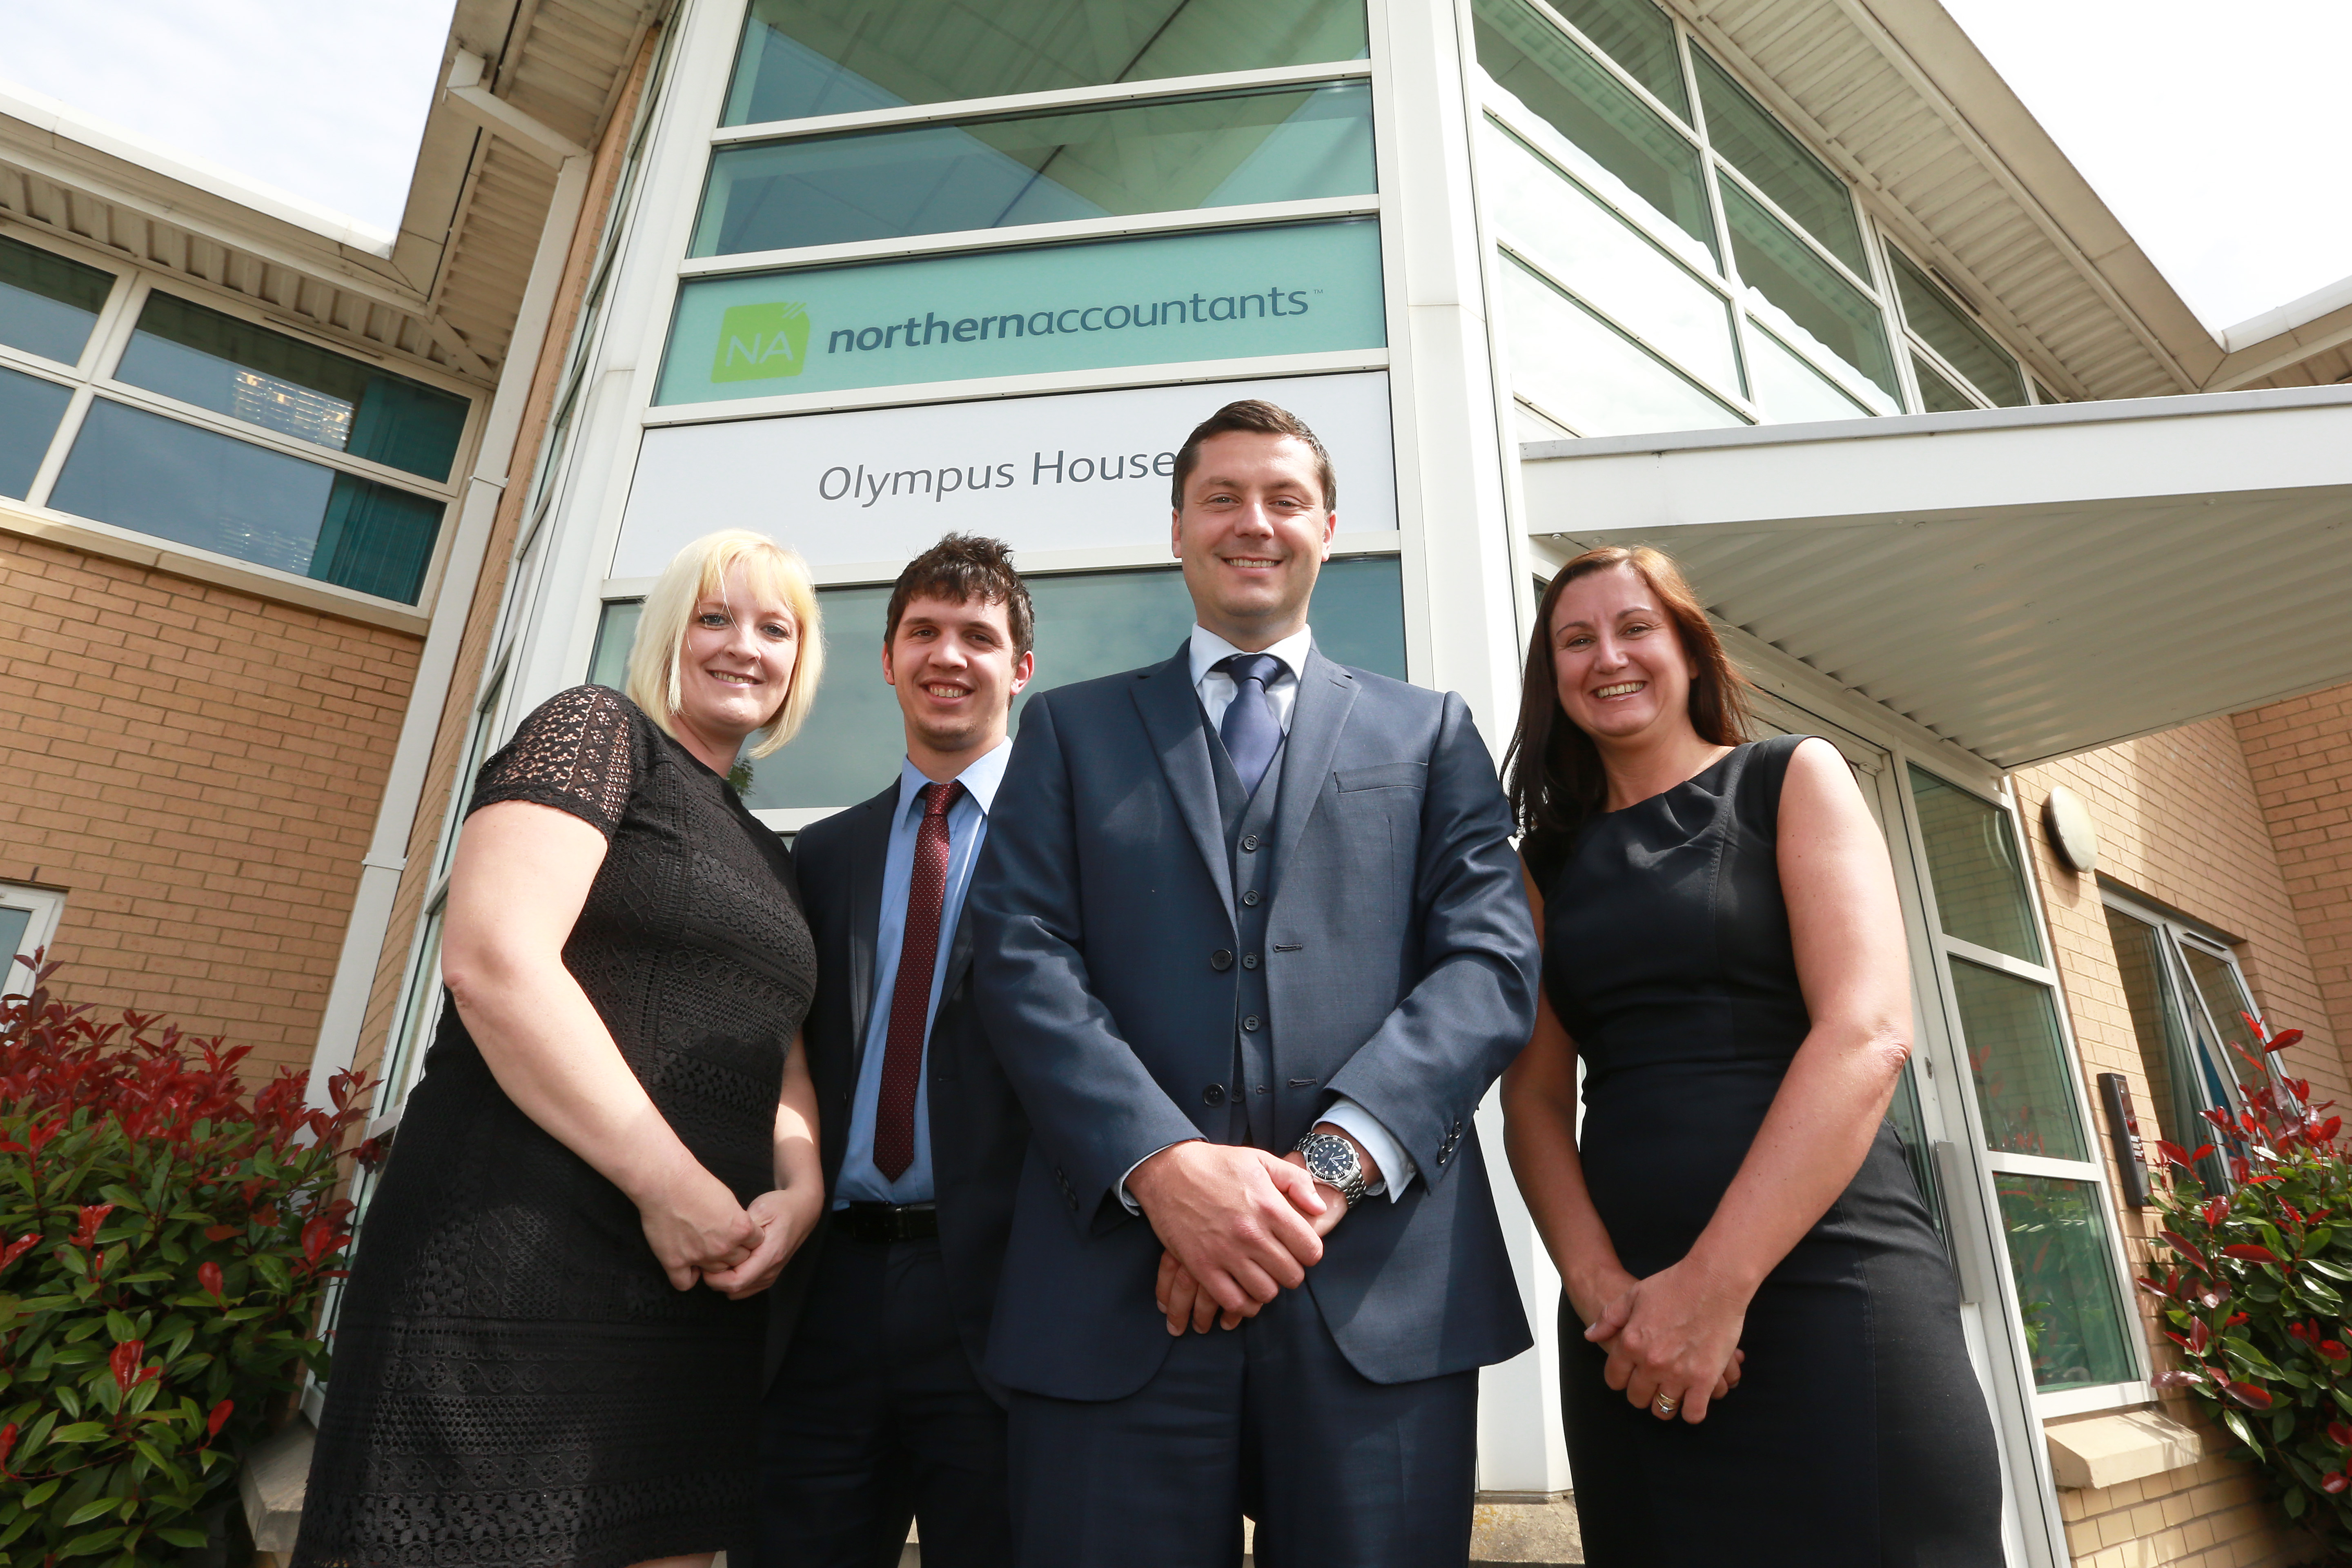 Redefined Group supports expansion of Leeds accountants